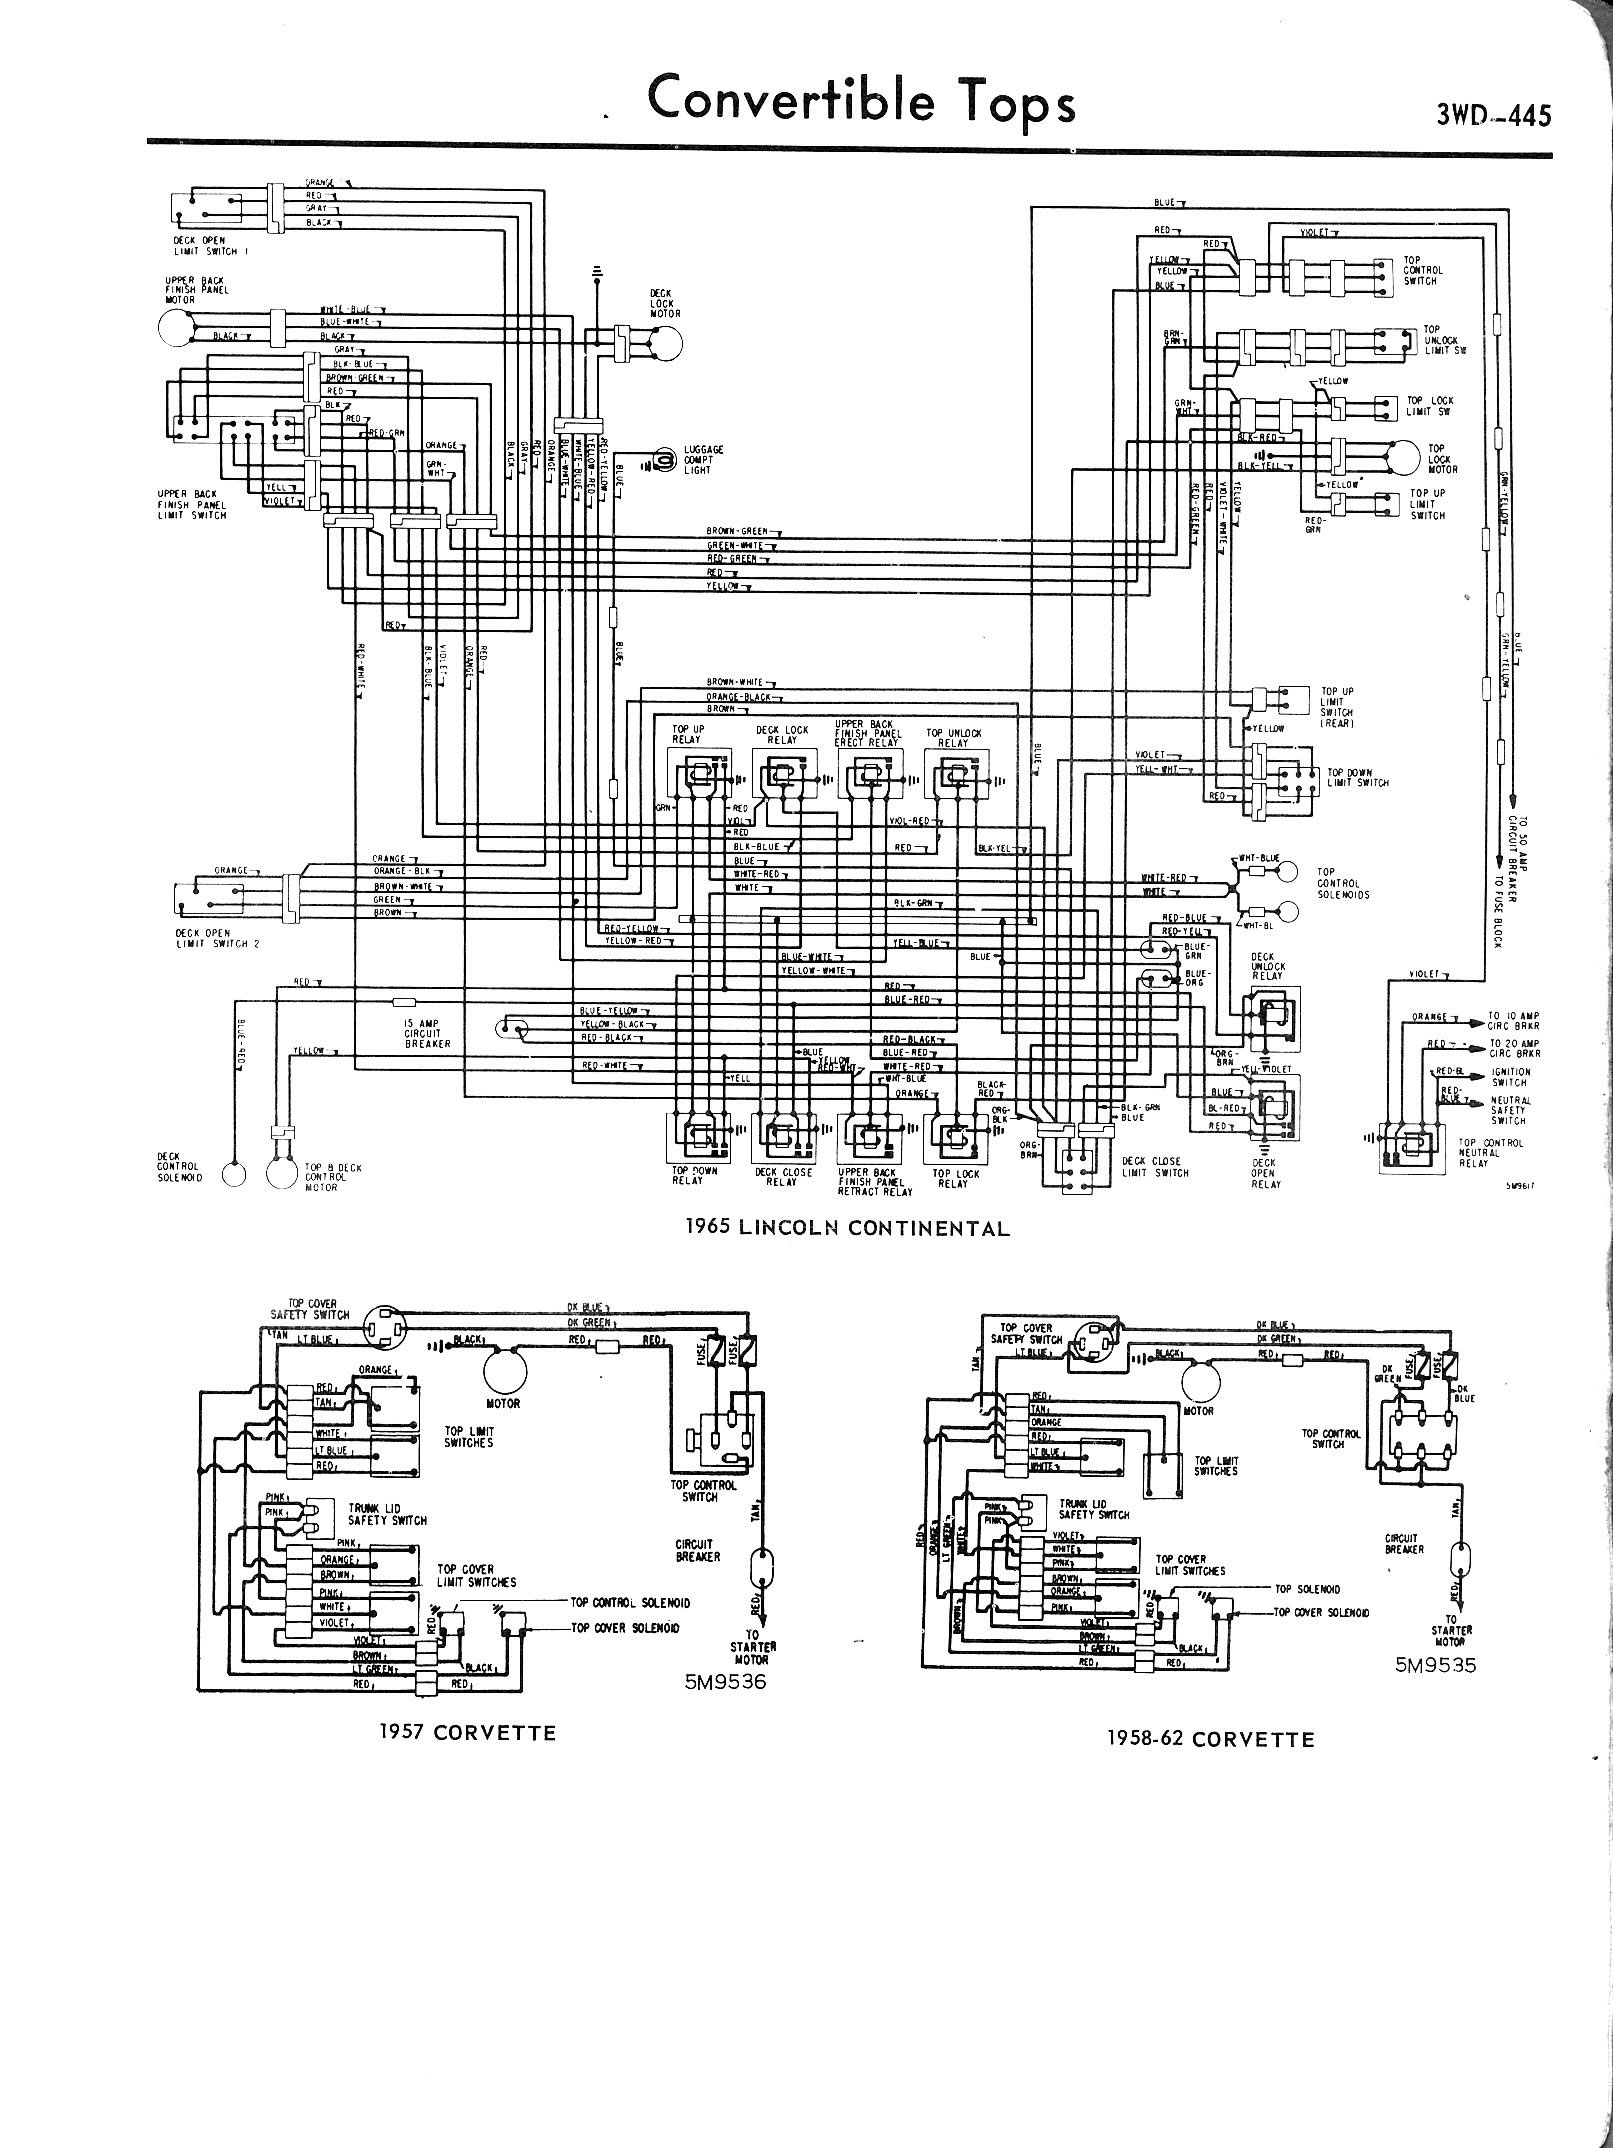 starter switch wiring diagram 1963 chevy truck turn signal 57 convert top trifive com 1955 1956 http www oldcarmanualproject m